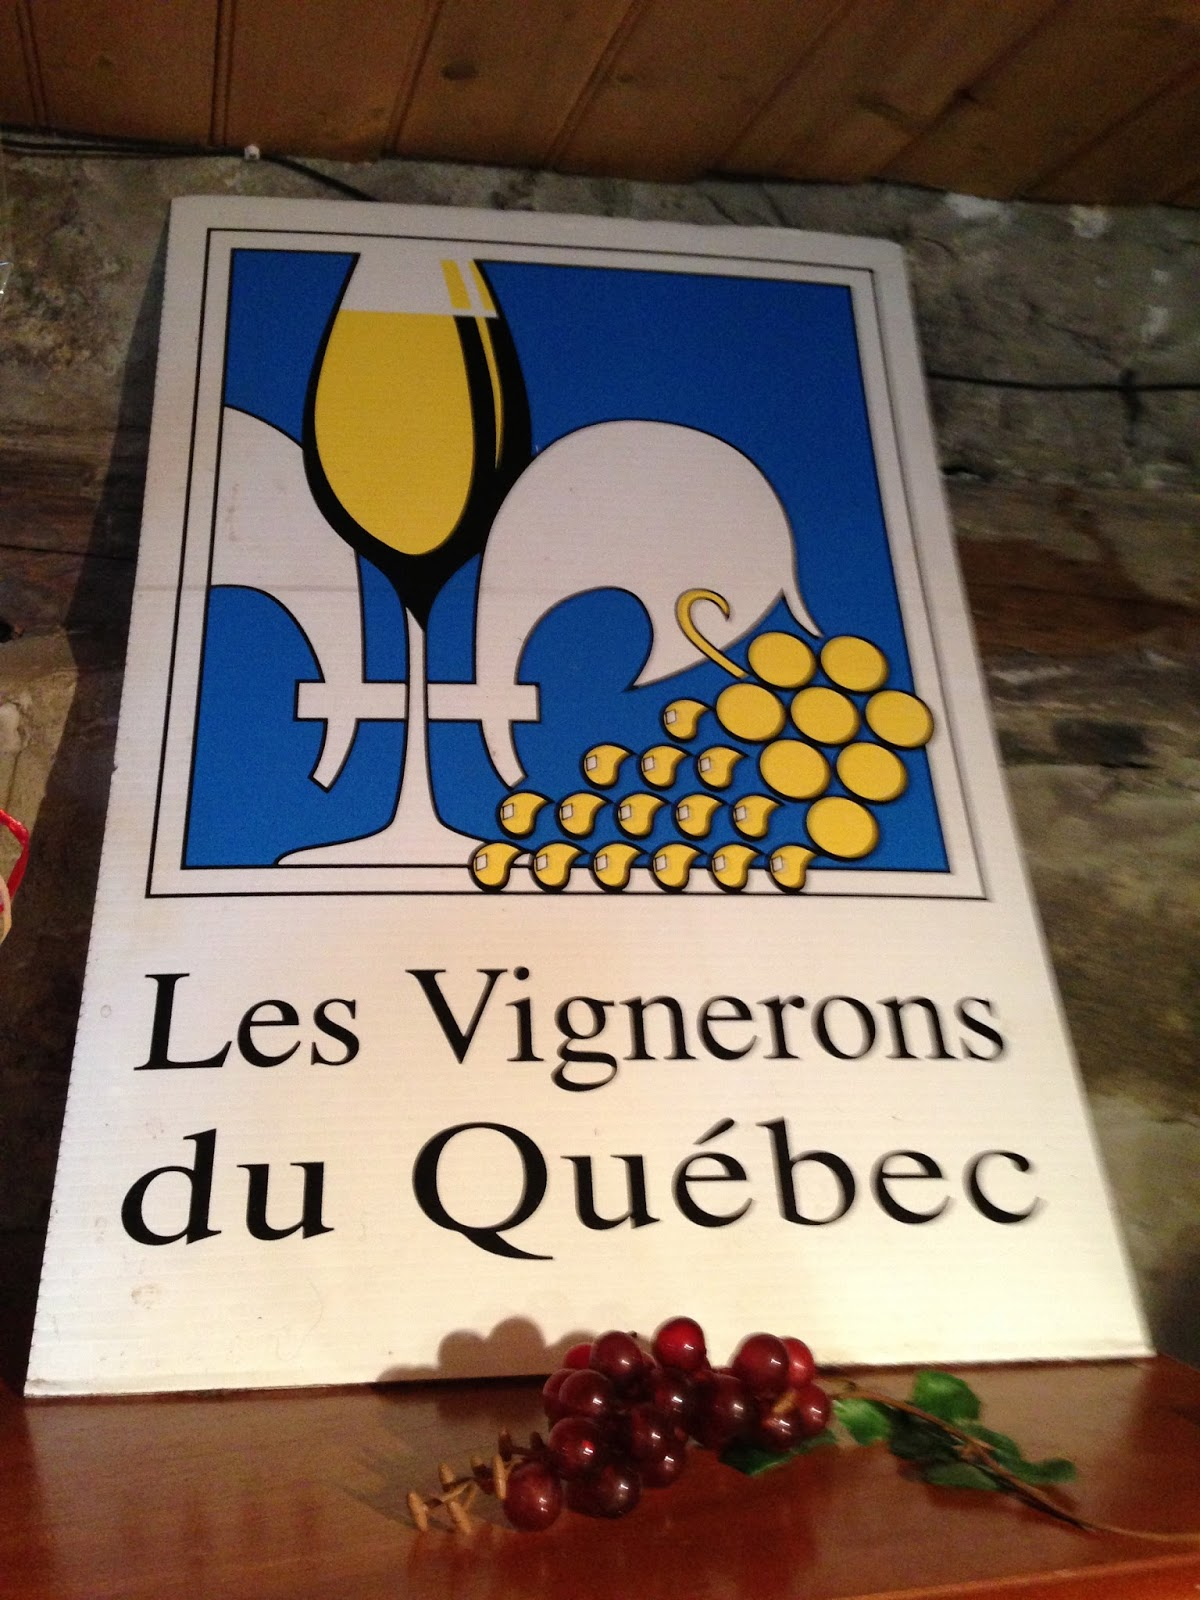 Exquisite Wine Wine Travel Stories Wines Of Quebec And The Exquisite Vandal .